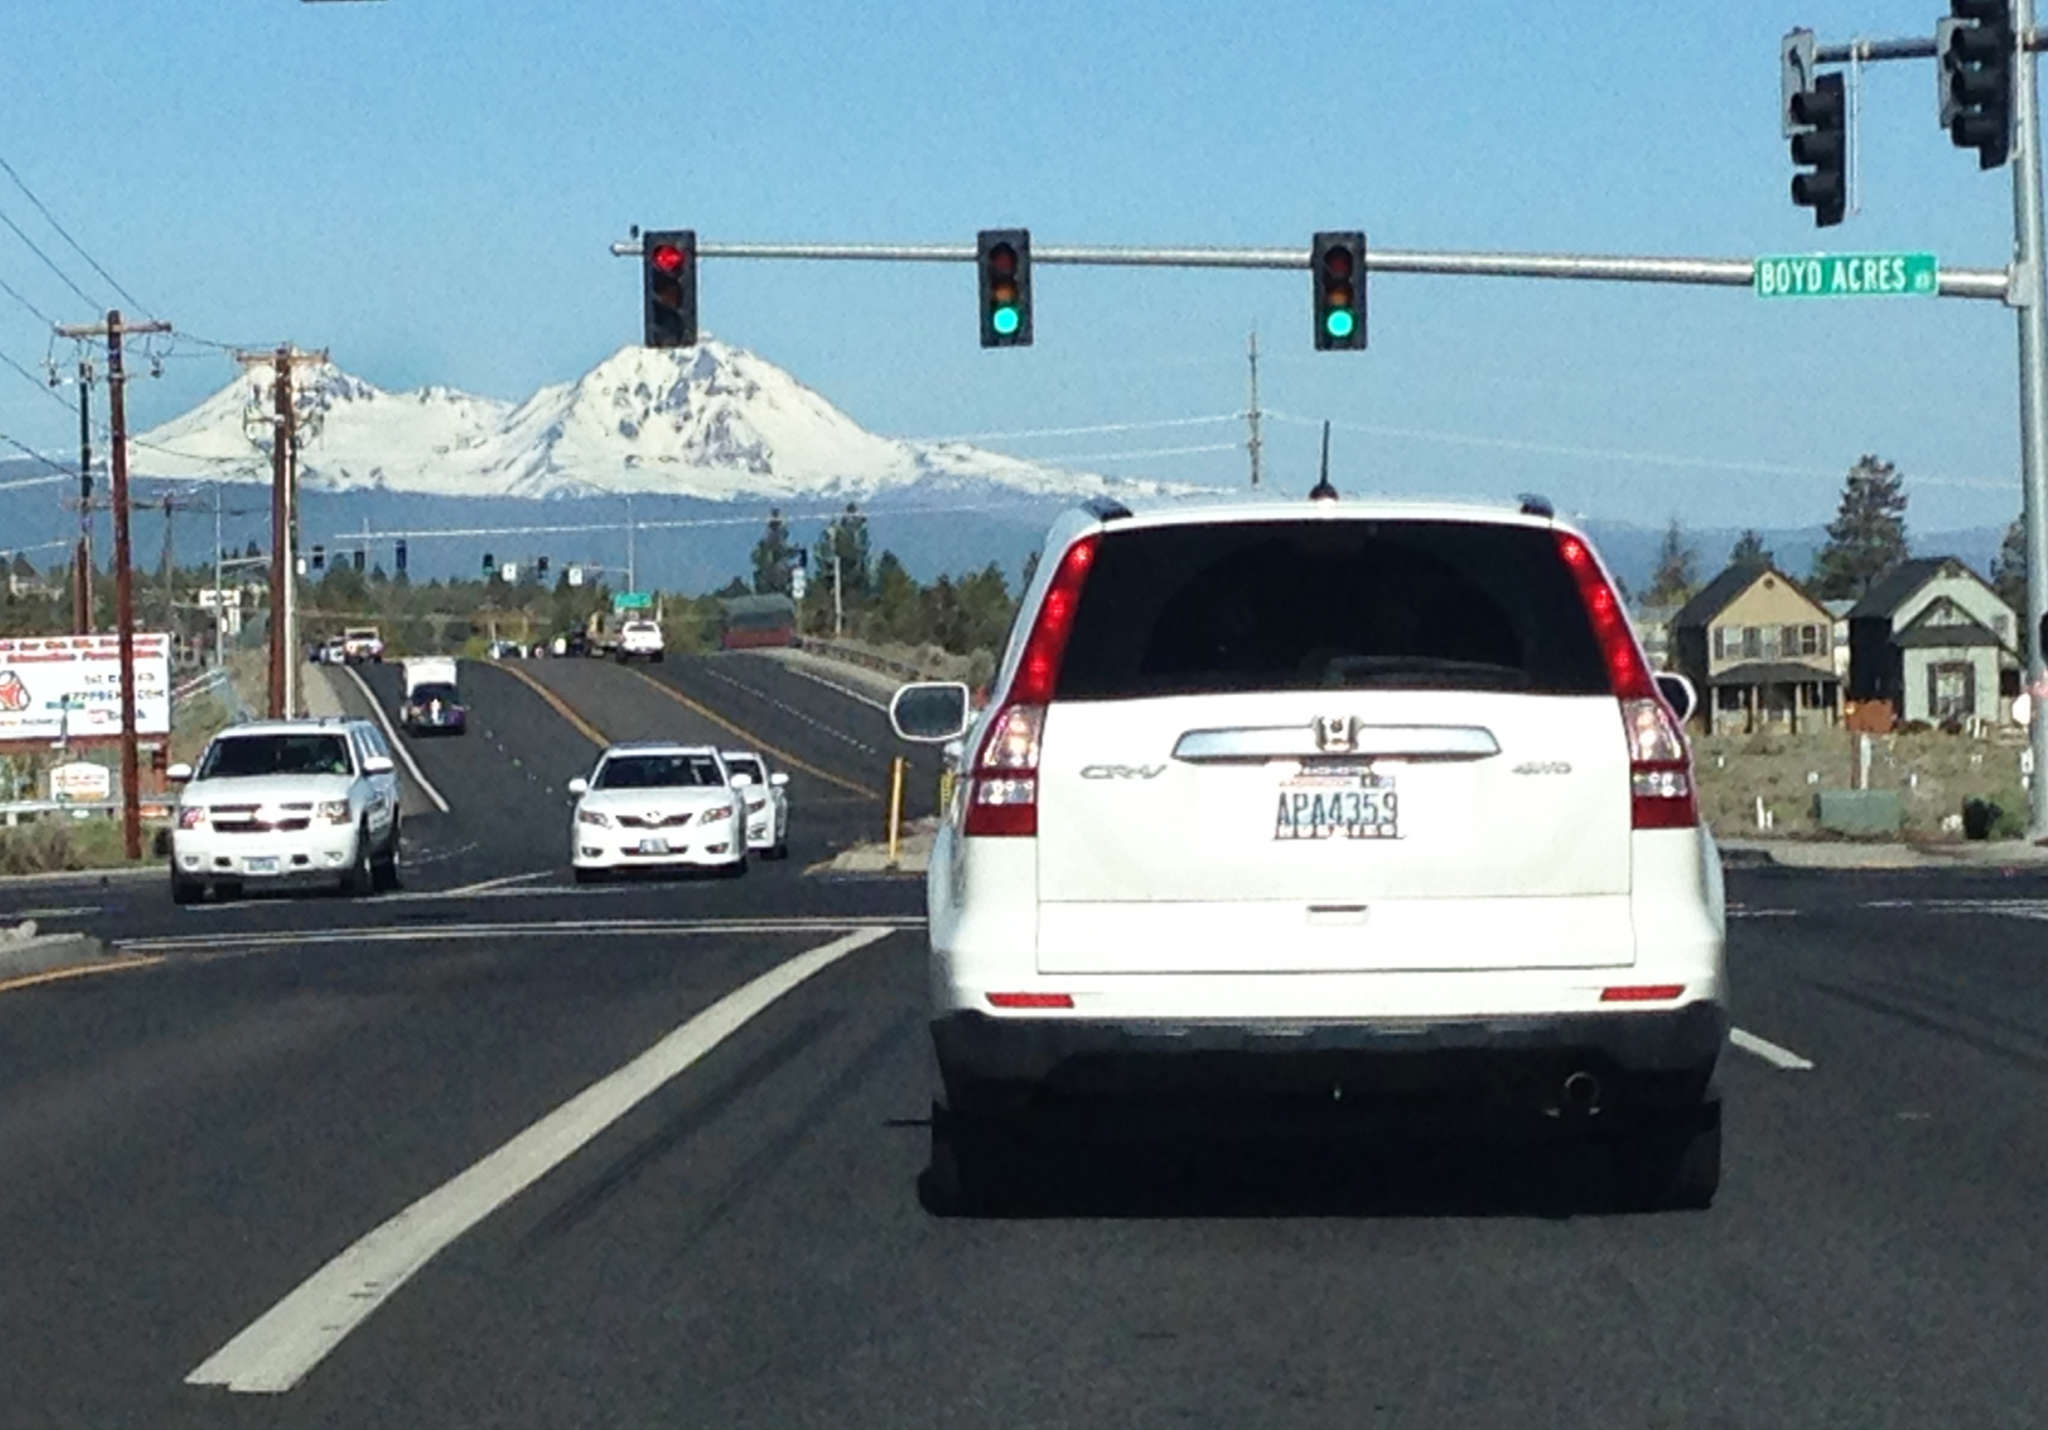 If you can see the mountains, you're looking west. That's a handy navigational tool in Bend!